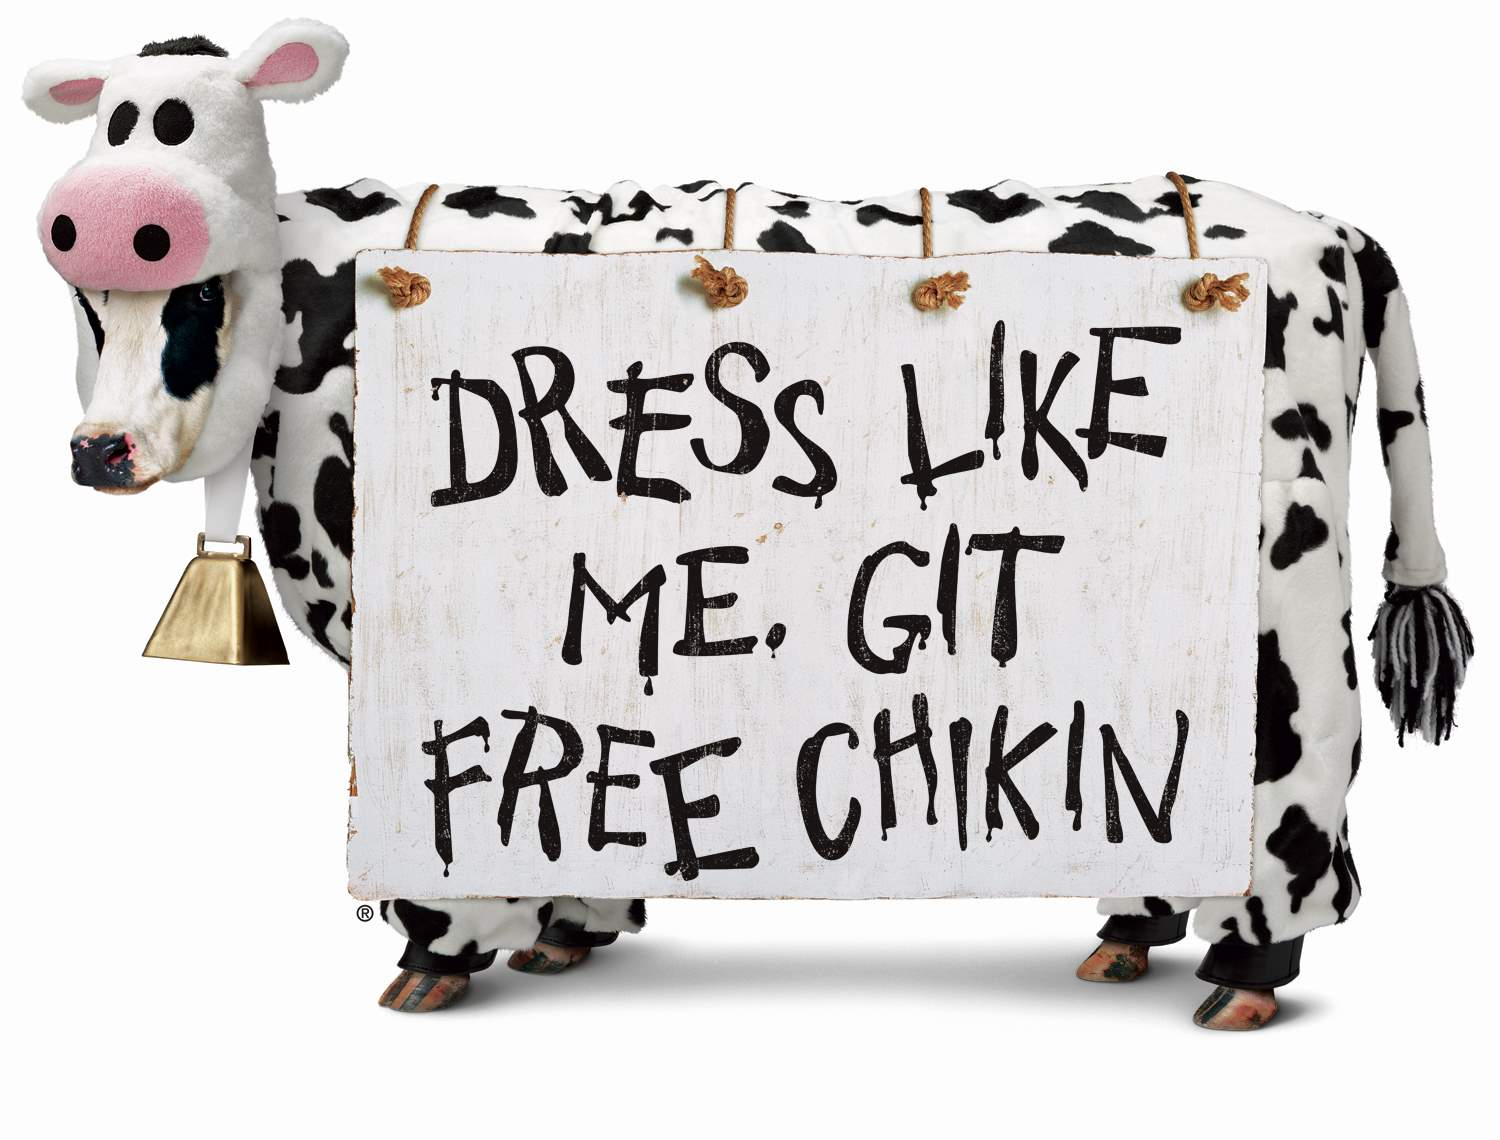 Horizontal cow sign promoting cow dress up for free chicken